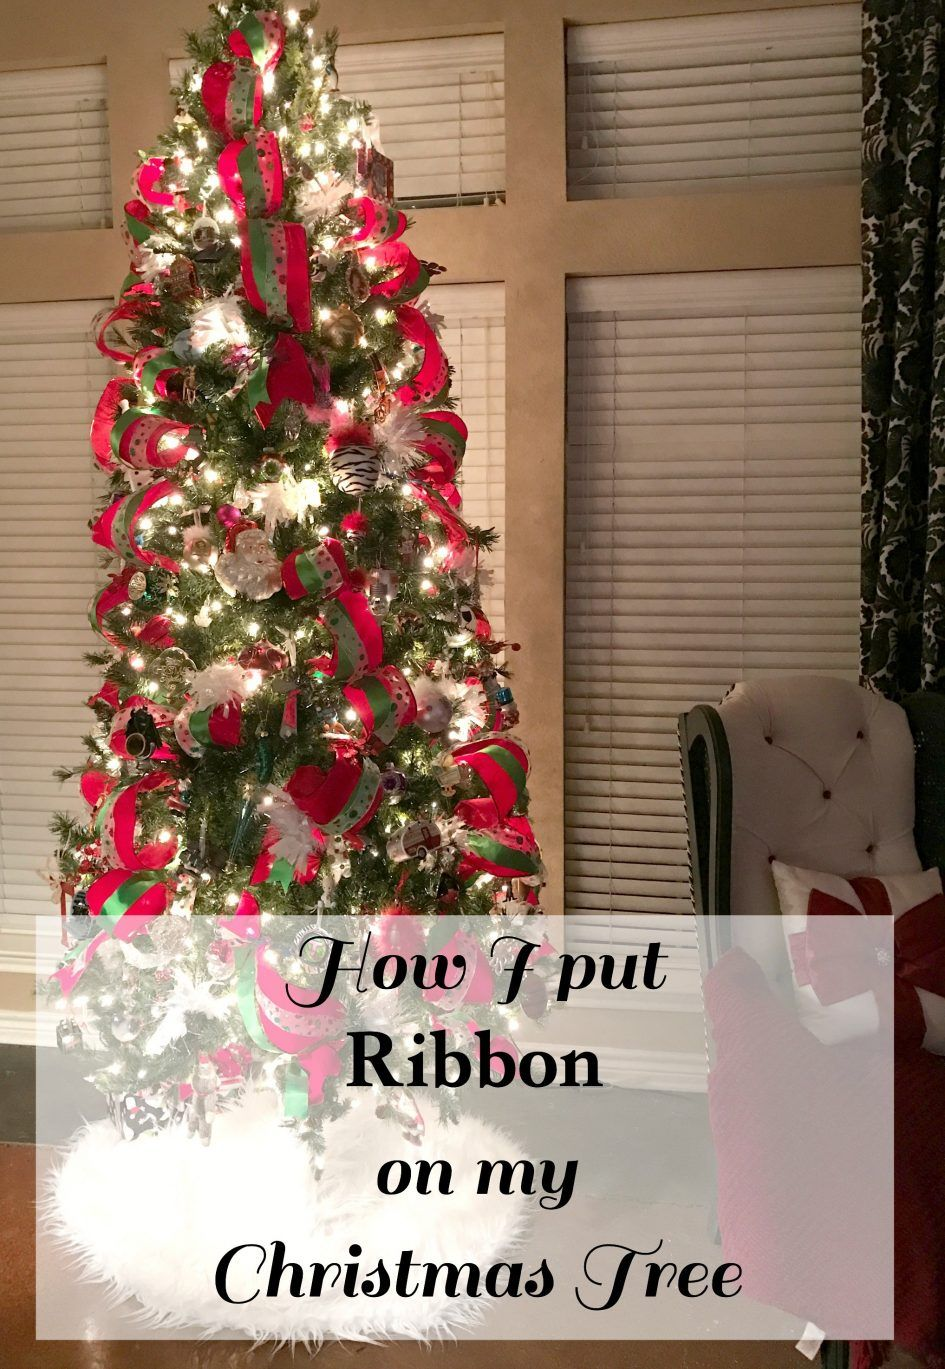 Christmas Tree How Put Ribbon Christmas Tree Patina And Paint Horizontally Pictures To On Pinterest 2015 A M Ribbon On Christmas Tree Christmas Tree Christmas